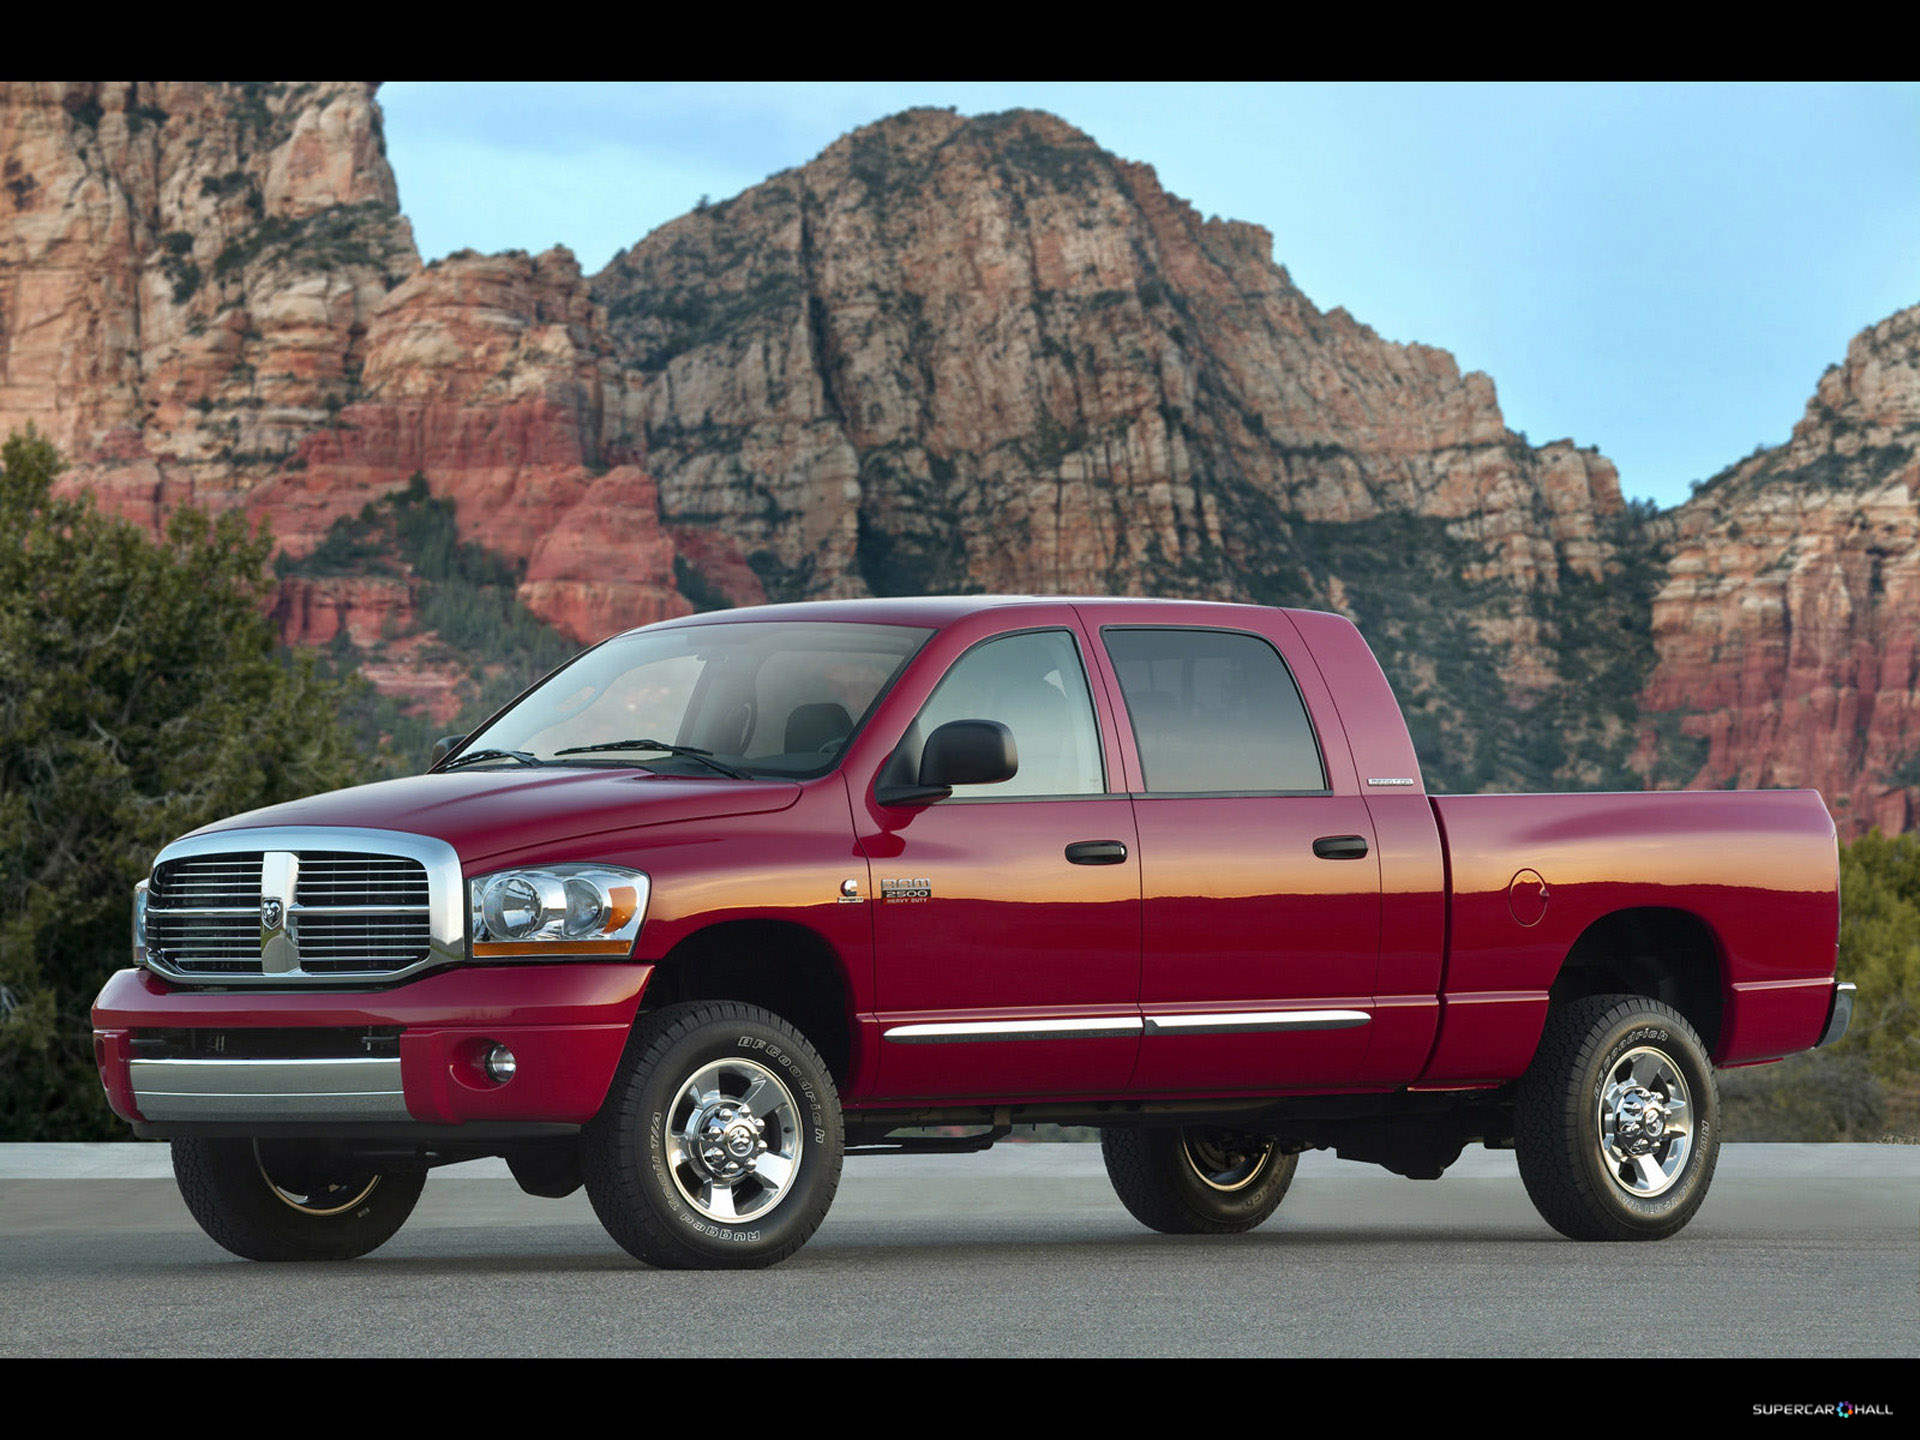 2018 Dodge Ram Mega Cab photo - 4